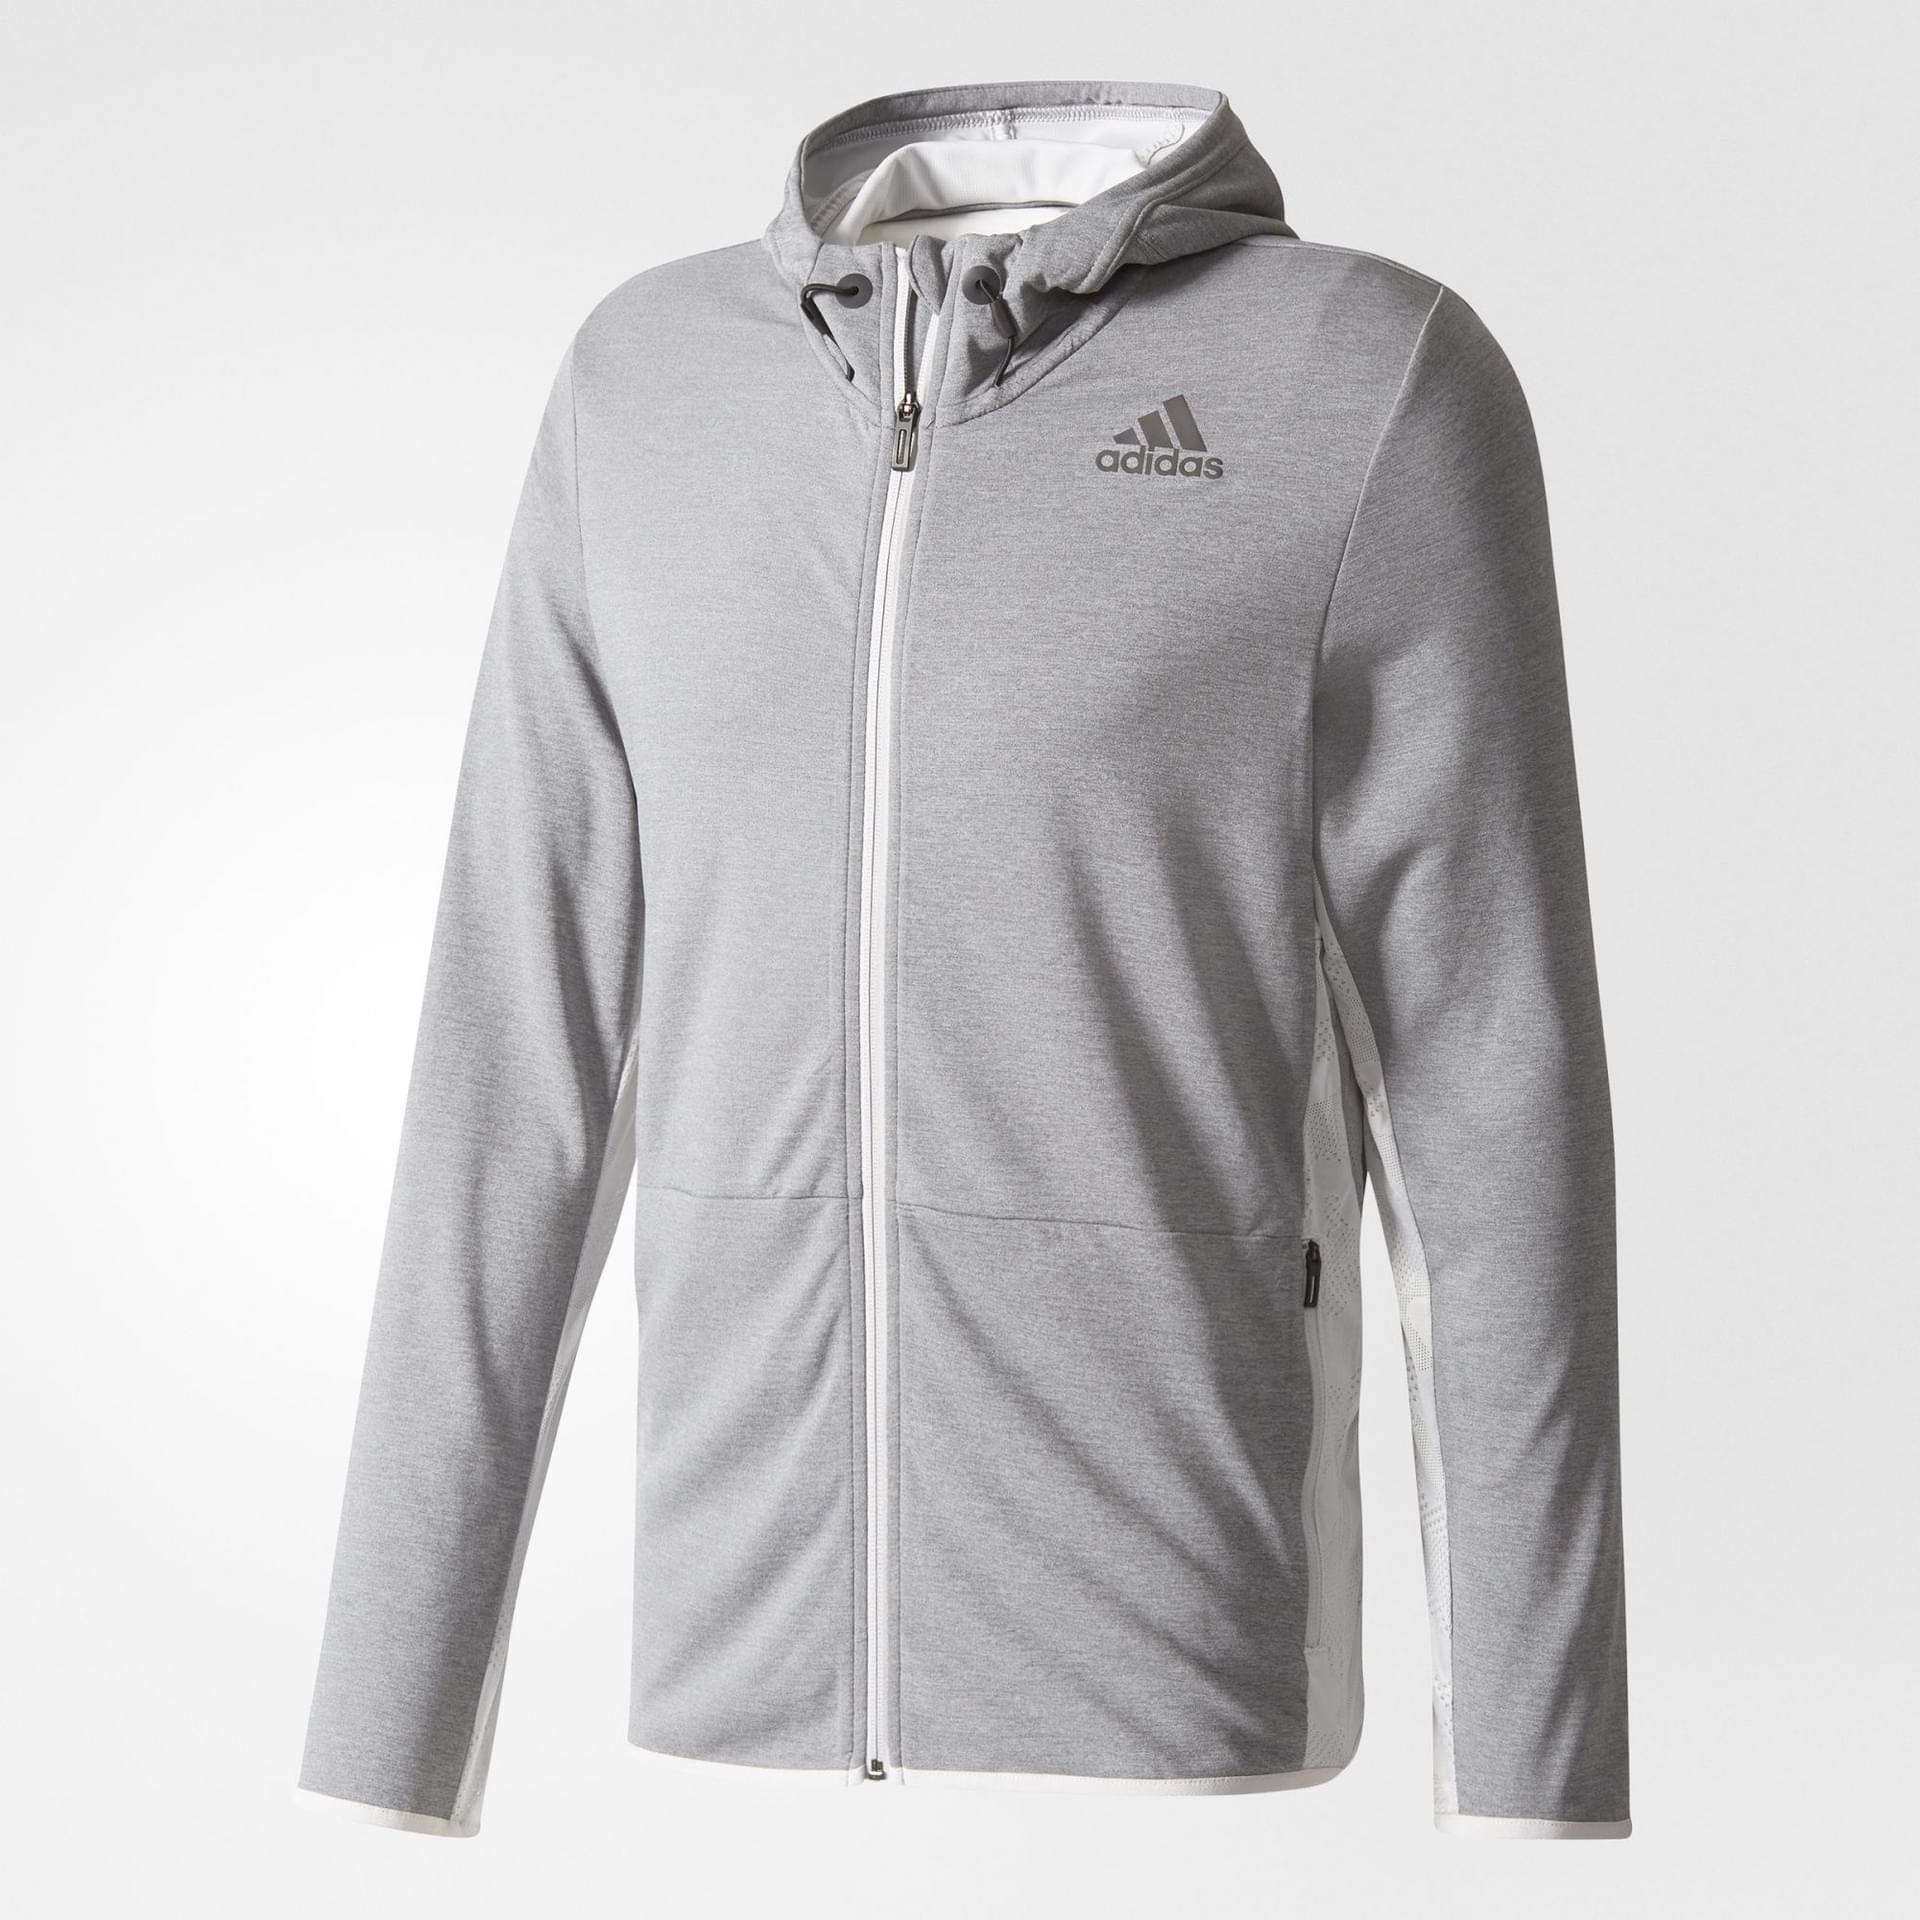 new product 81f2a b2c2d ADIDAS SWEATSHIRT CLIMACOOL WORKOUT JACKET MENS - Poobie Naidoos